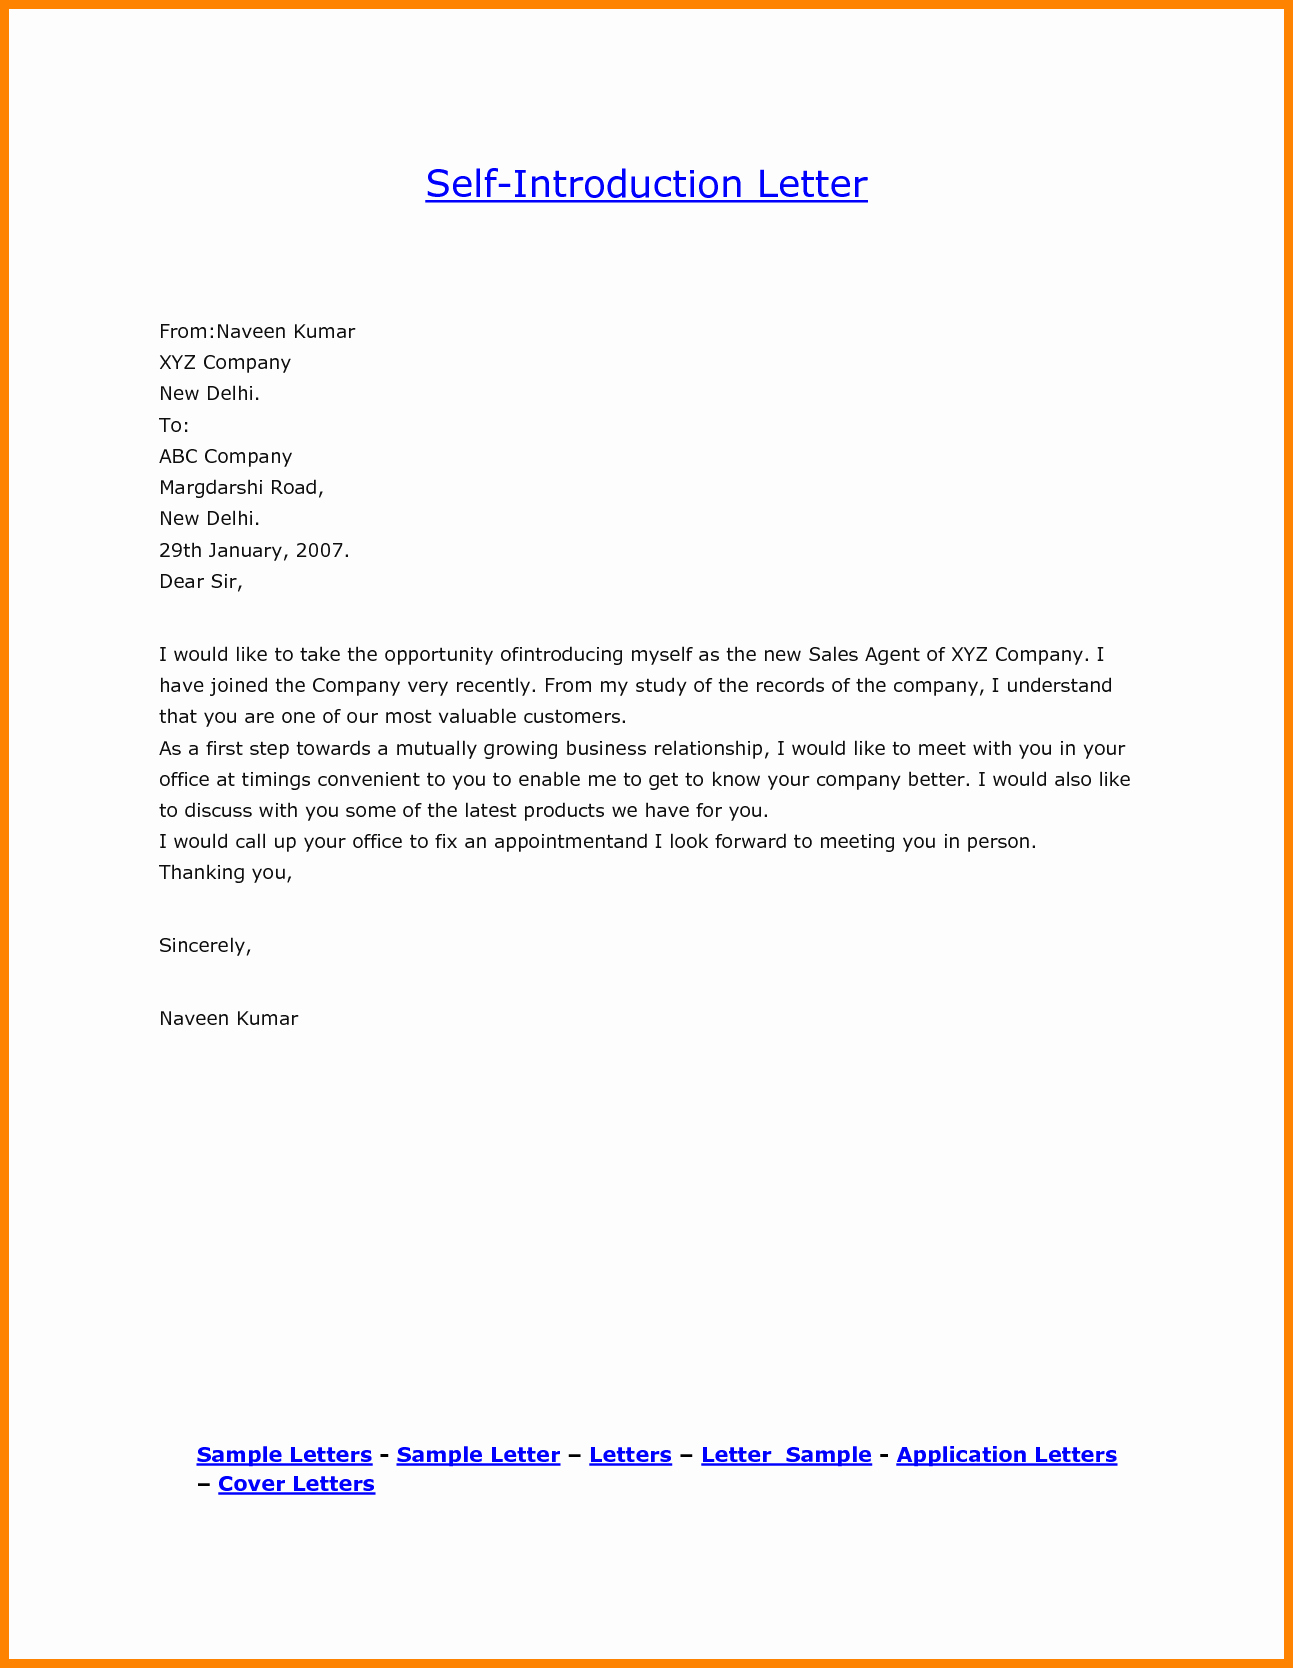 Business Introduction Email Template Lovely 5 Self Introduction Email to Colleagues